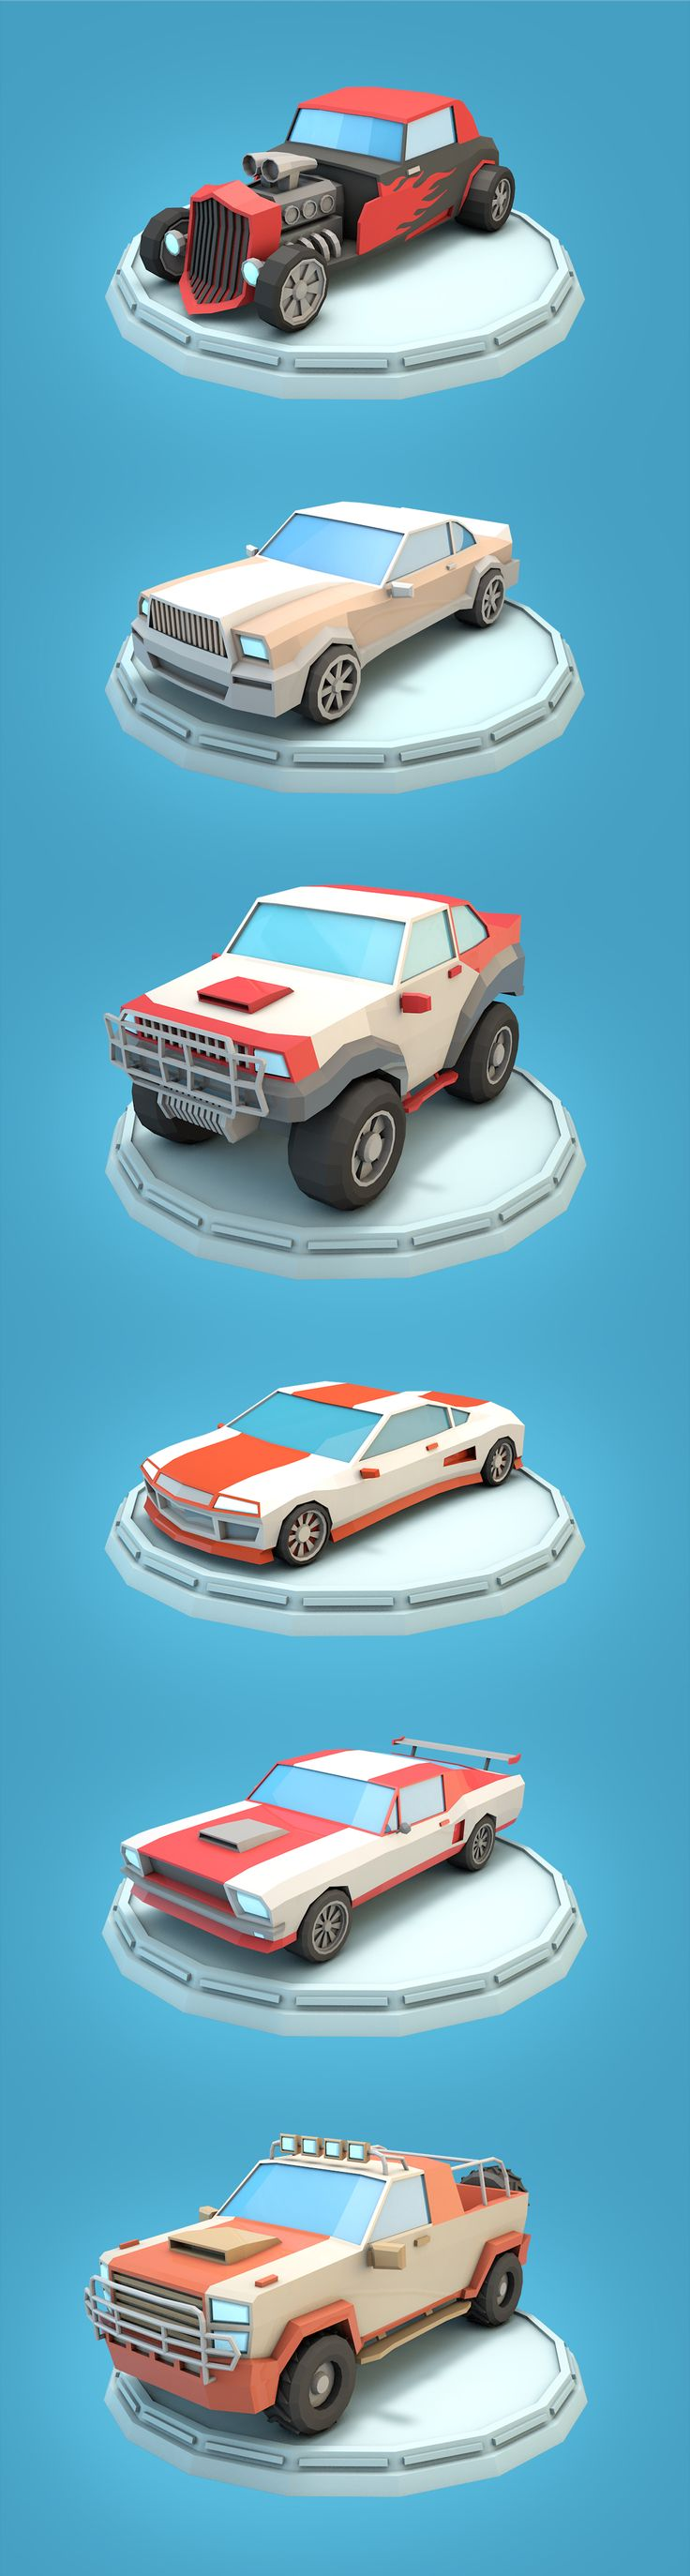 he racing car set consists of six low poly cars and six textures. All cars have UV mapping and ready for game. Formats: max, maya, c4d, blend, fbx, obj